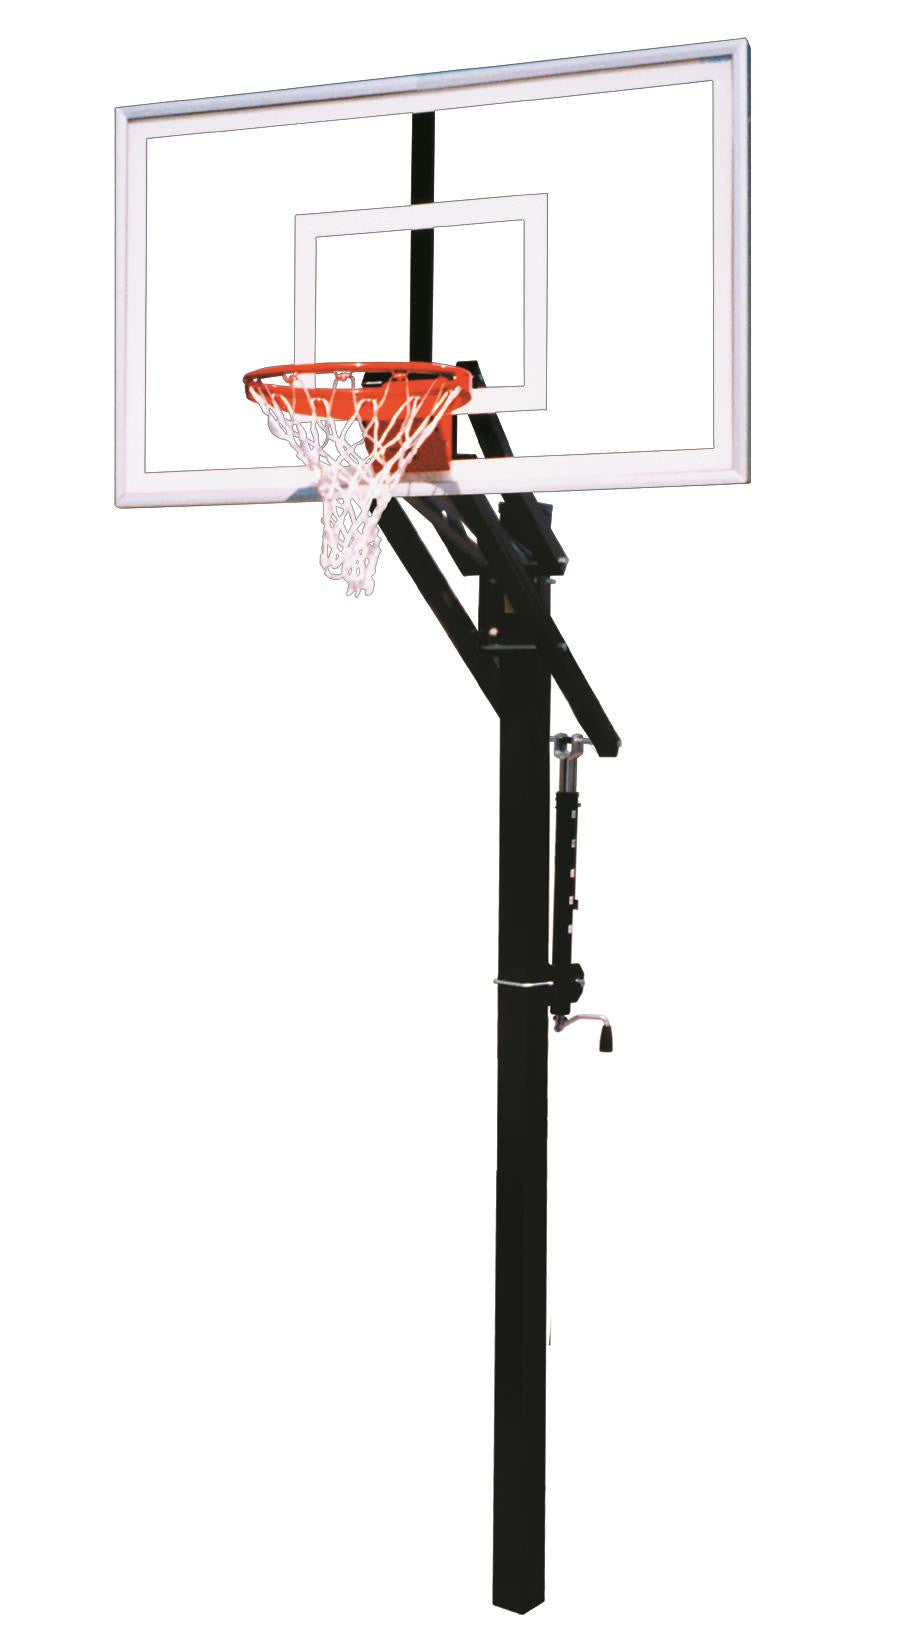 First Team Jam Nitro In Ground Outdoor Adjustable Basketball Hoop 60 inch Tempered Glass